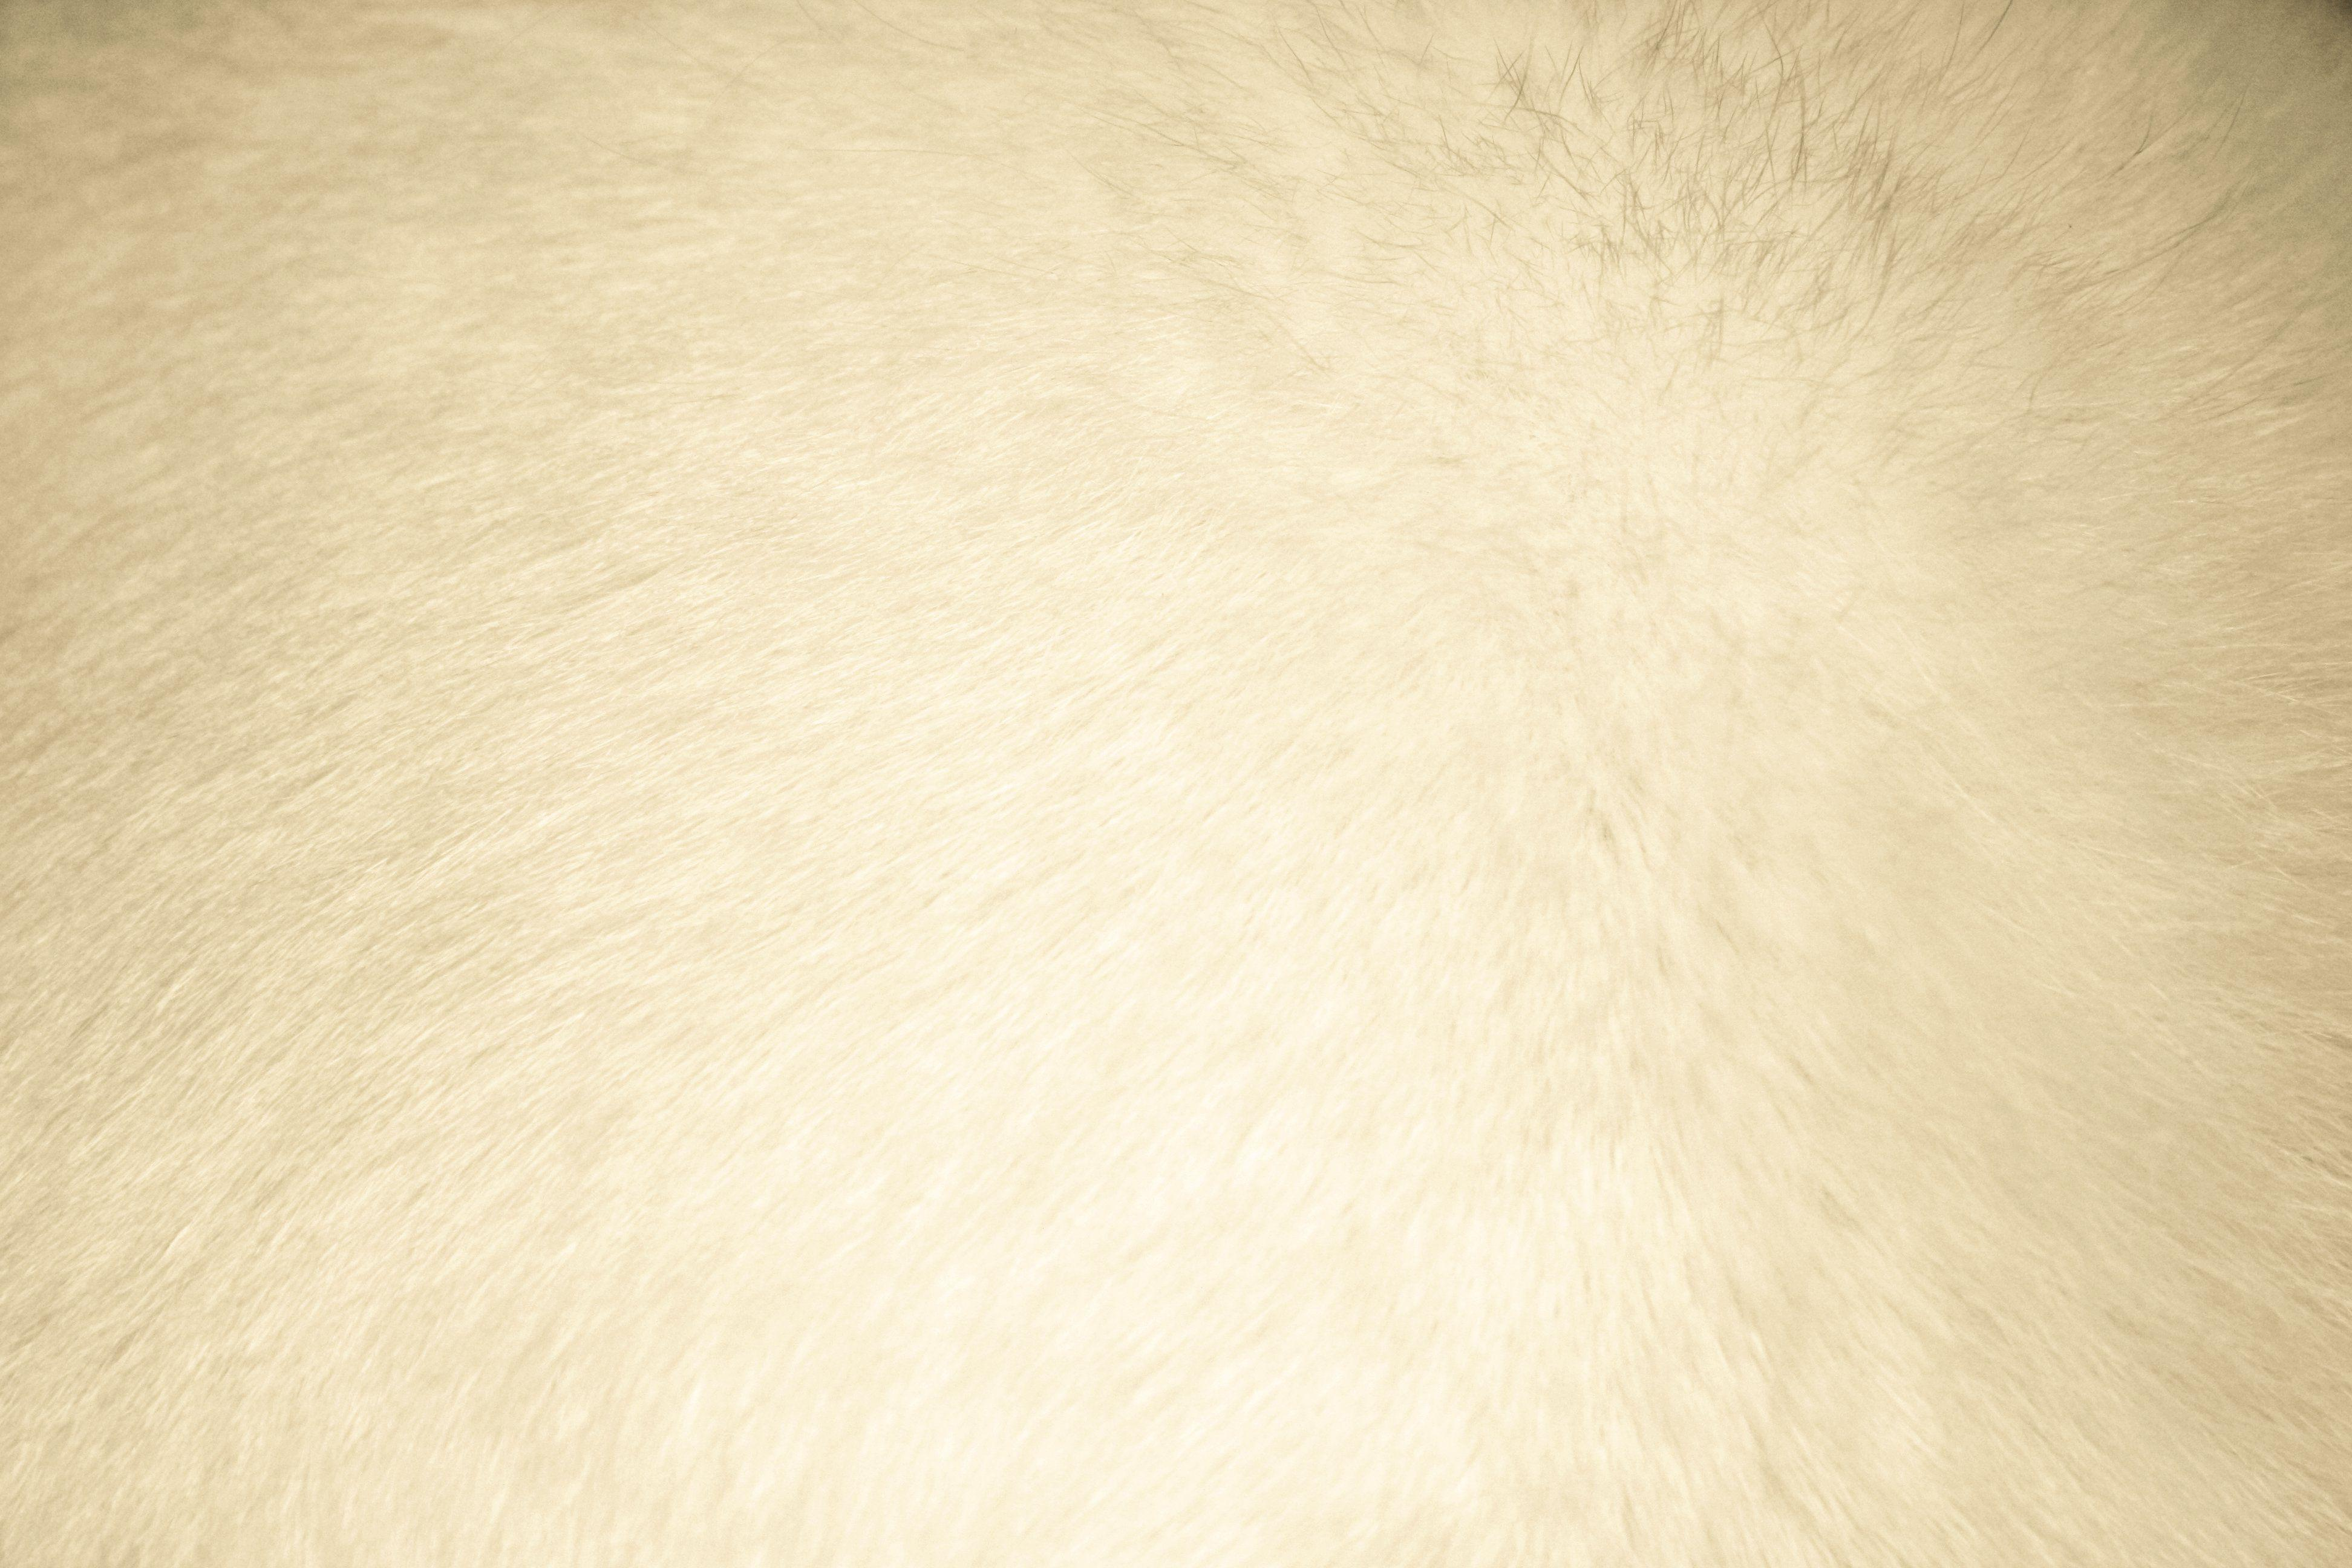 Cream Colored Backgrounds 3888x2592